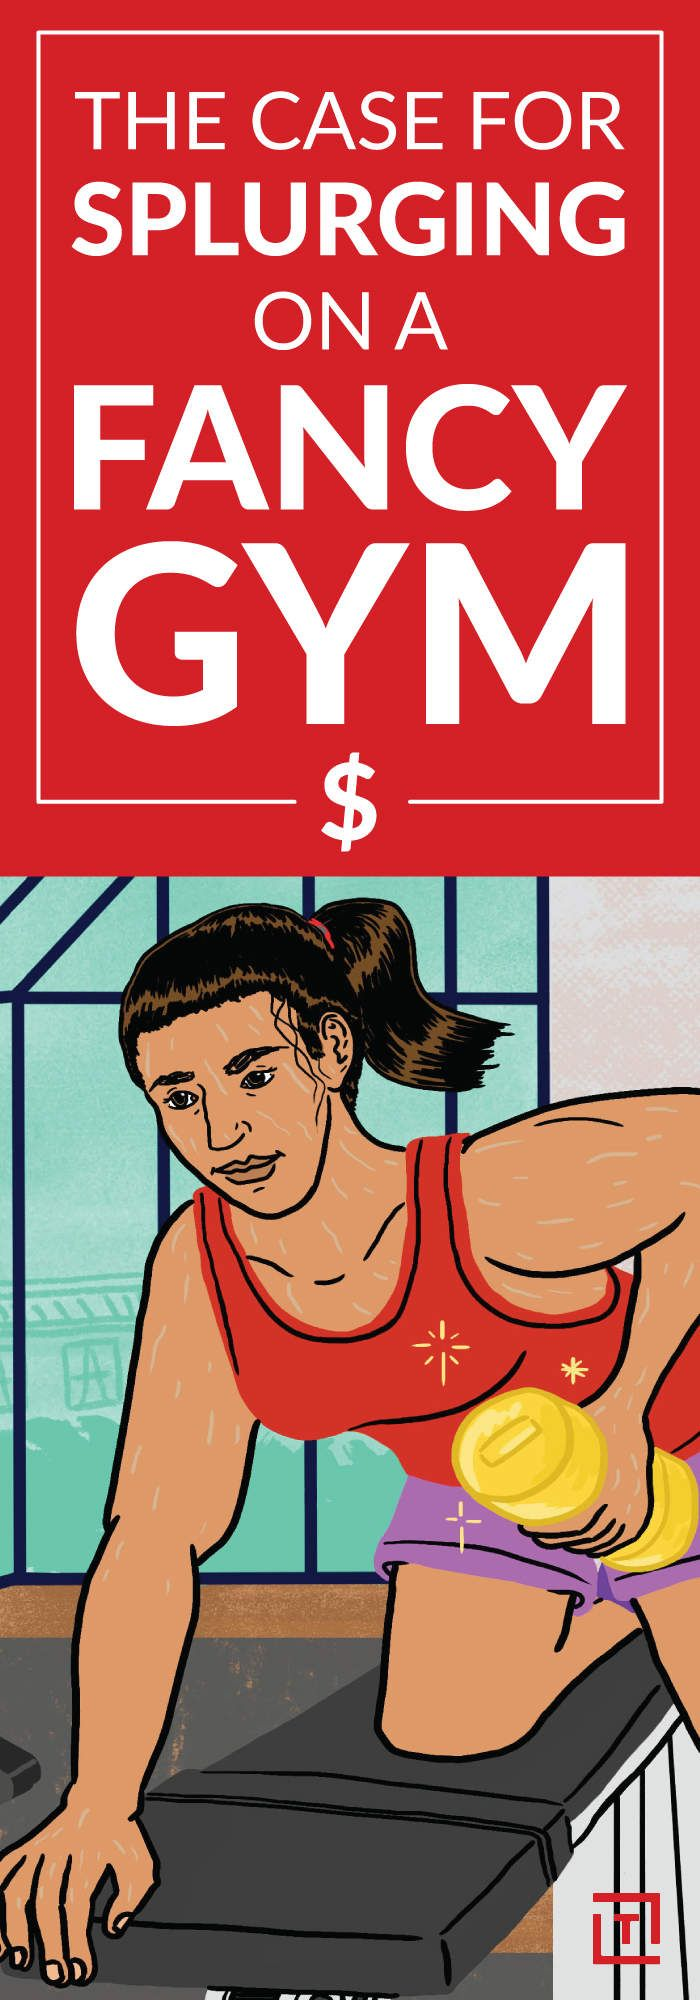 The Case for Splurging on a Fancy Gym